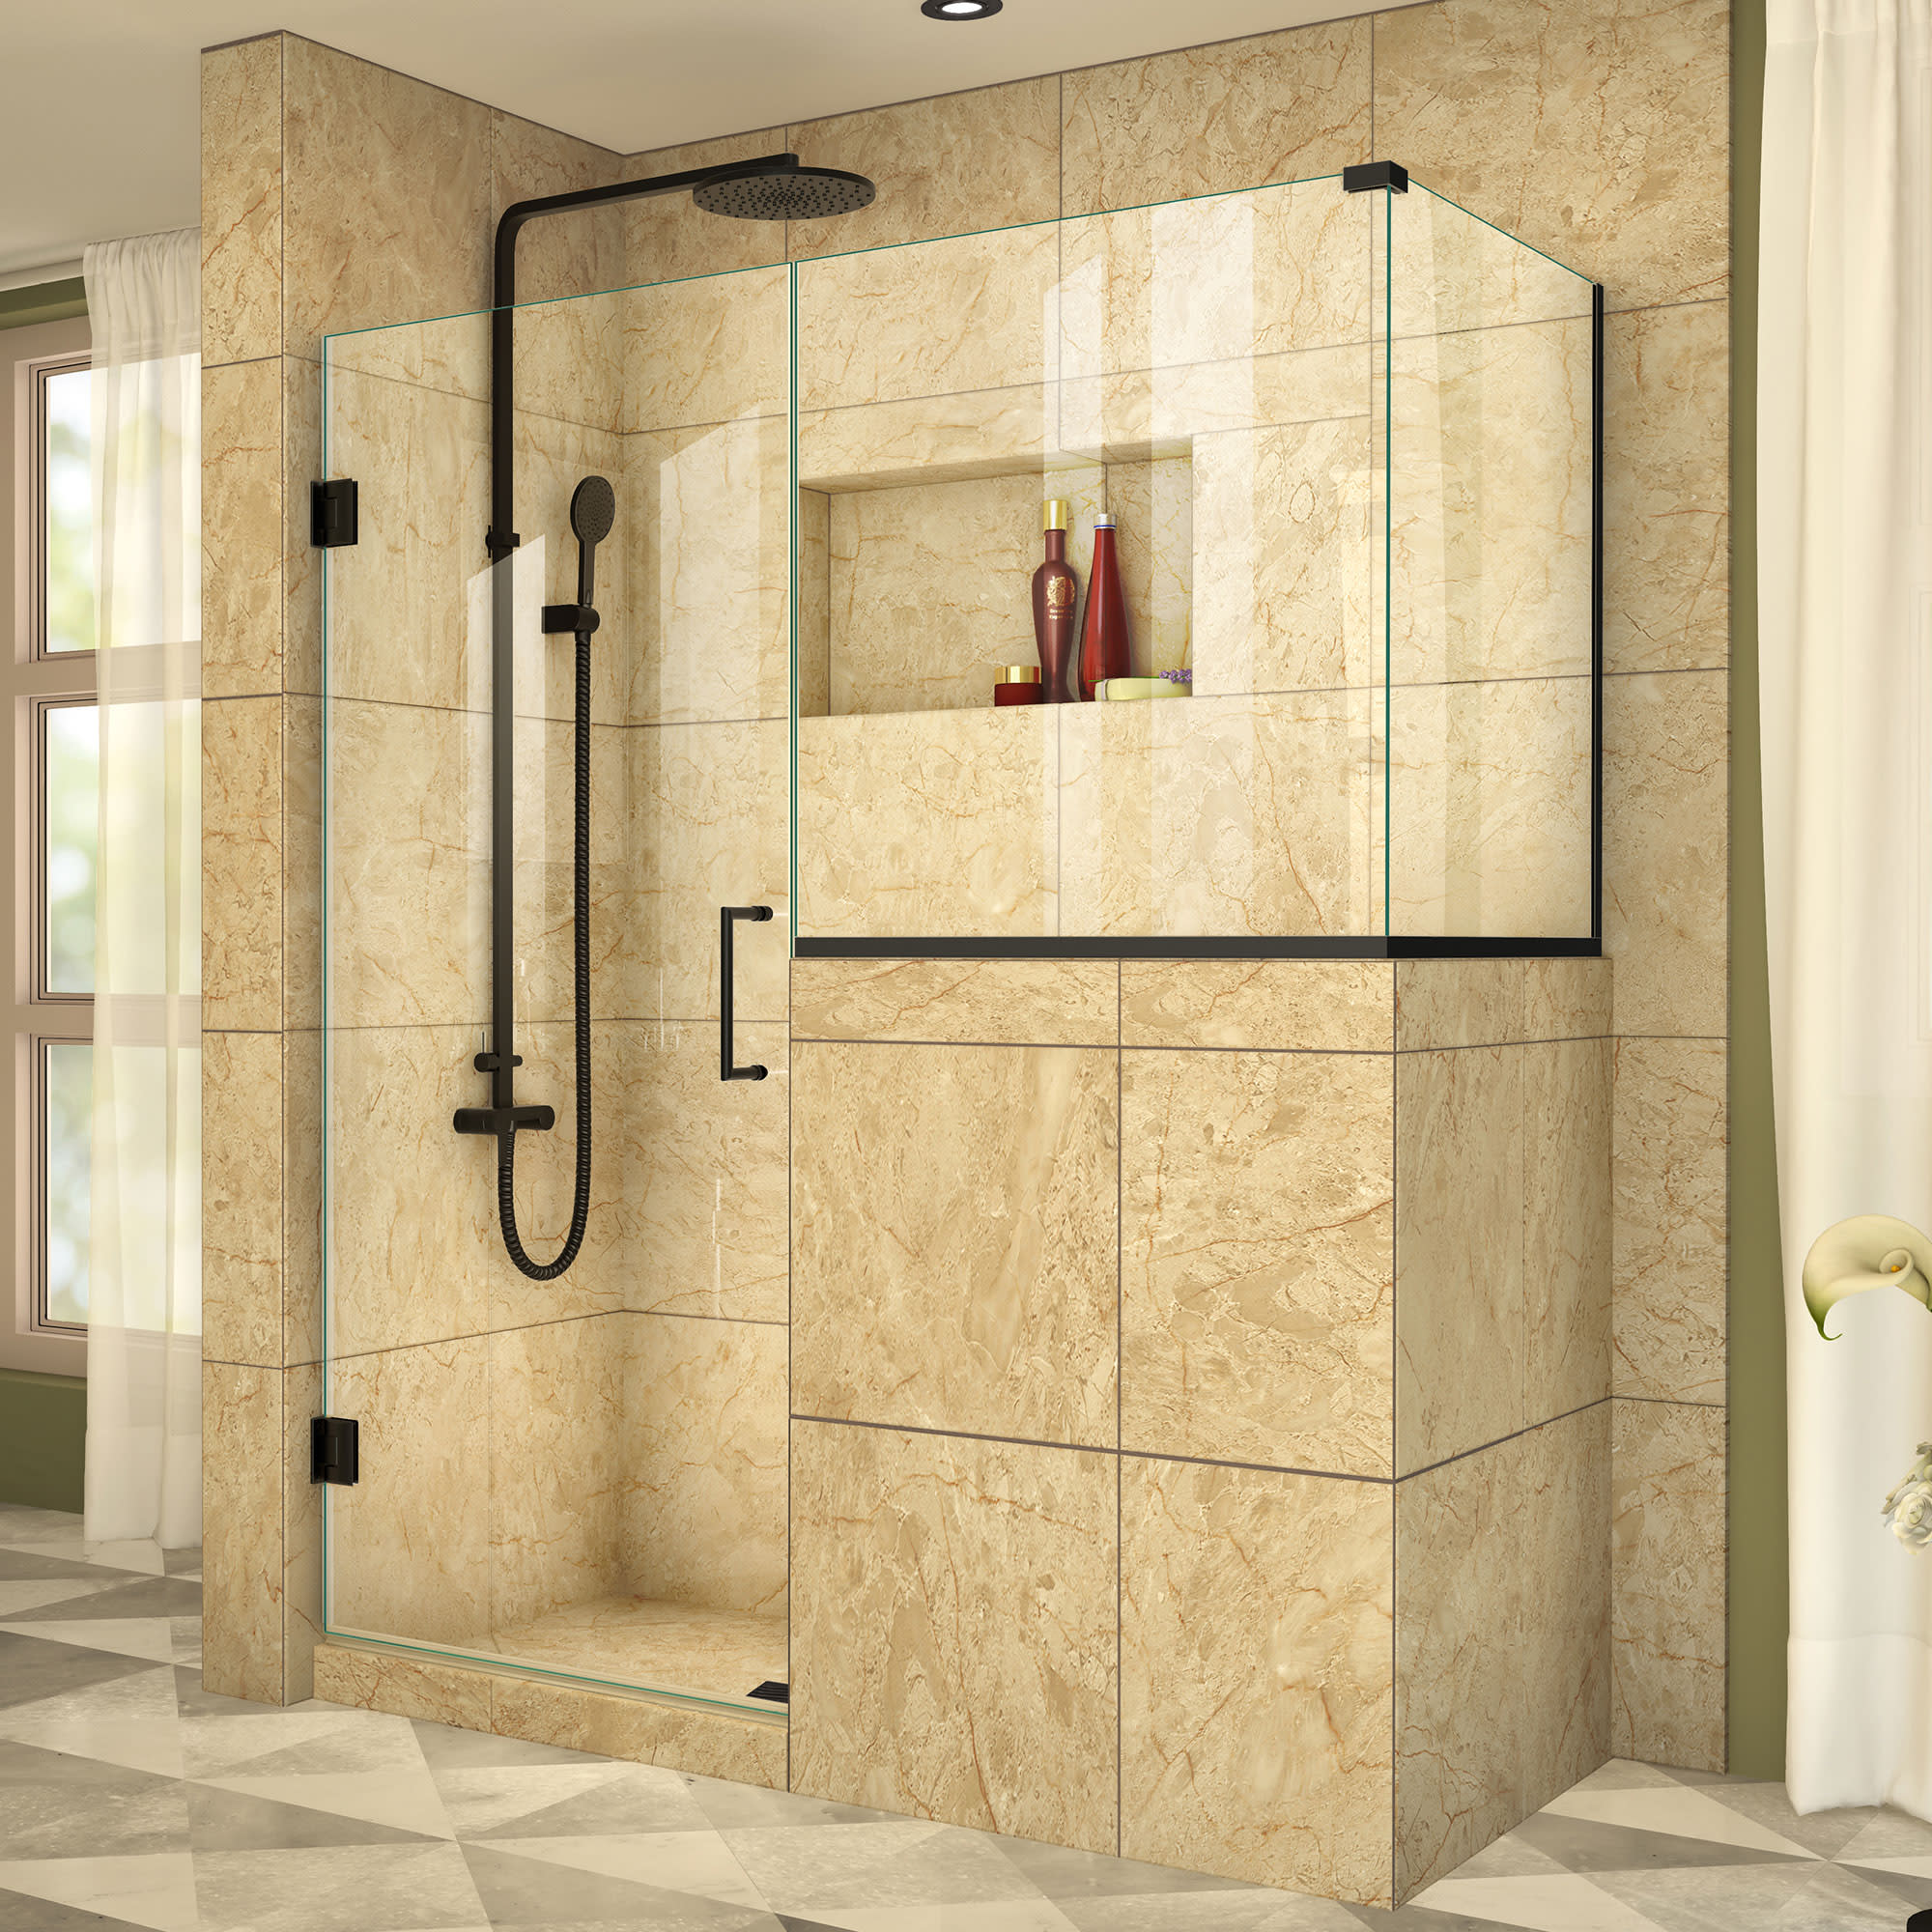 DreamLine Unidoor Plus 54 in. W x 36 3/8 in. D x 72 in. H Frameless Hinged Shower Enclosure in Satin Black